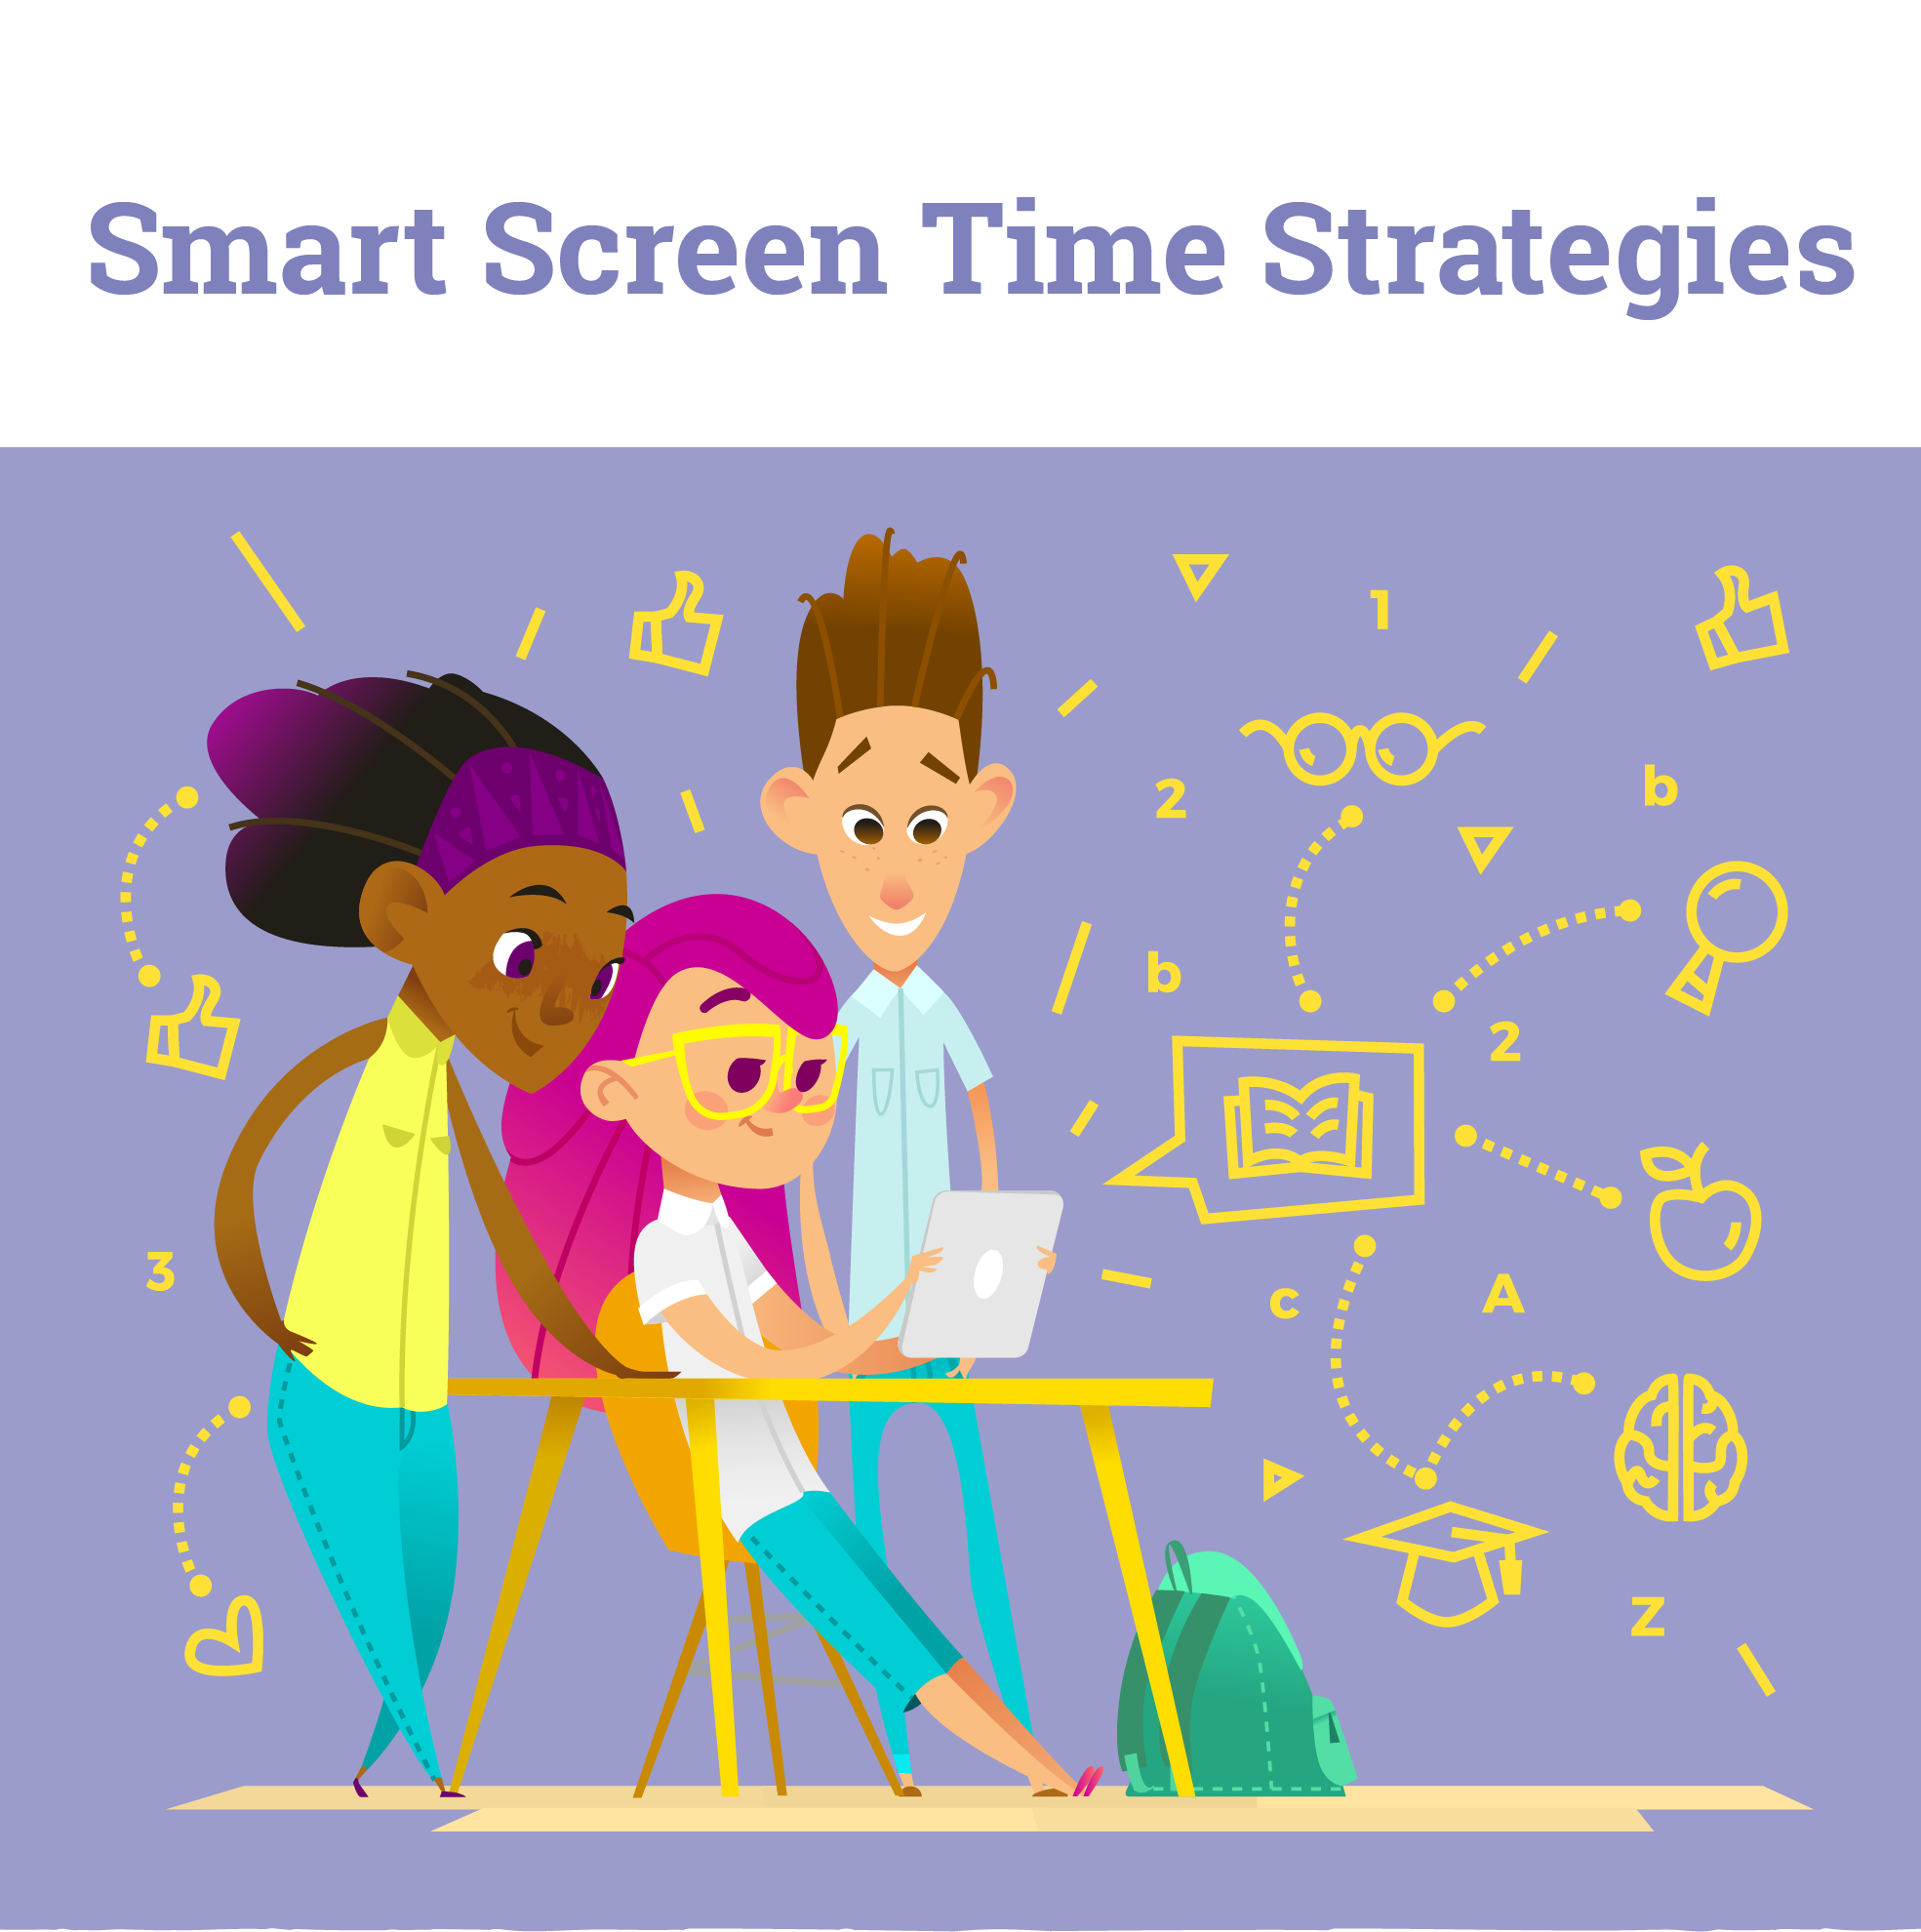 Tips for making screen time valuable